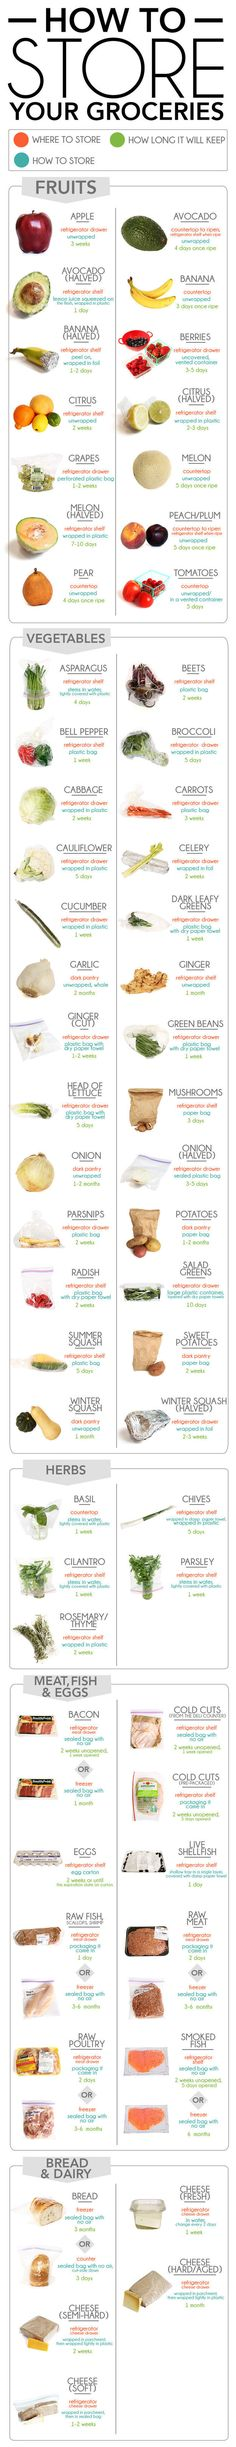 After the grocery trip, make sure you store your groceries correctly to save the most money possible. For more guides like this, go to www.civilizedcavemancooking.com